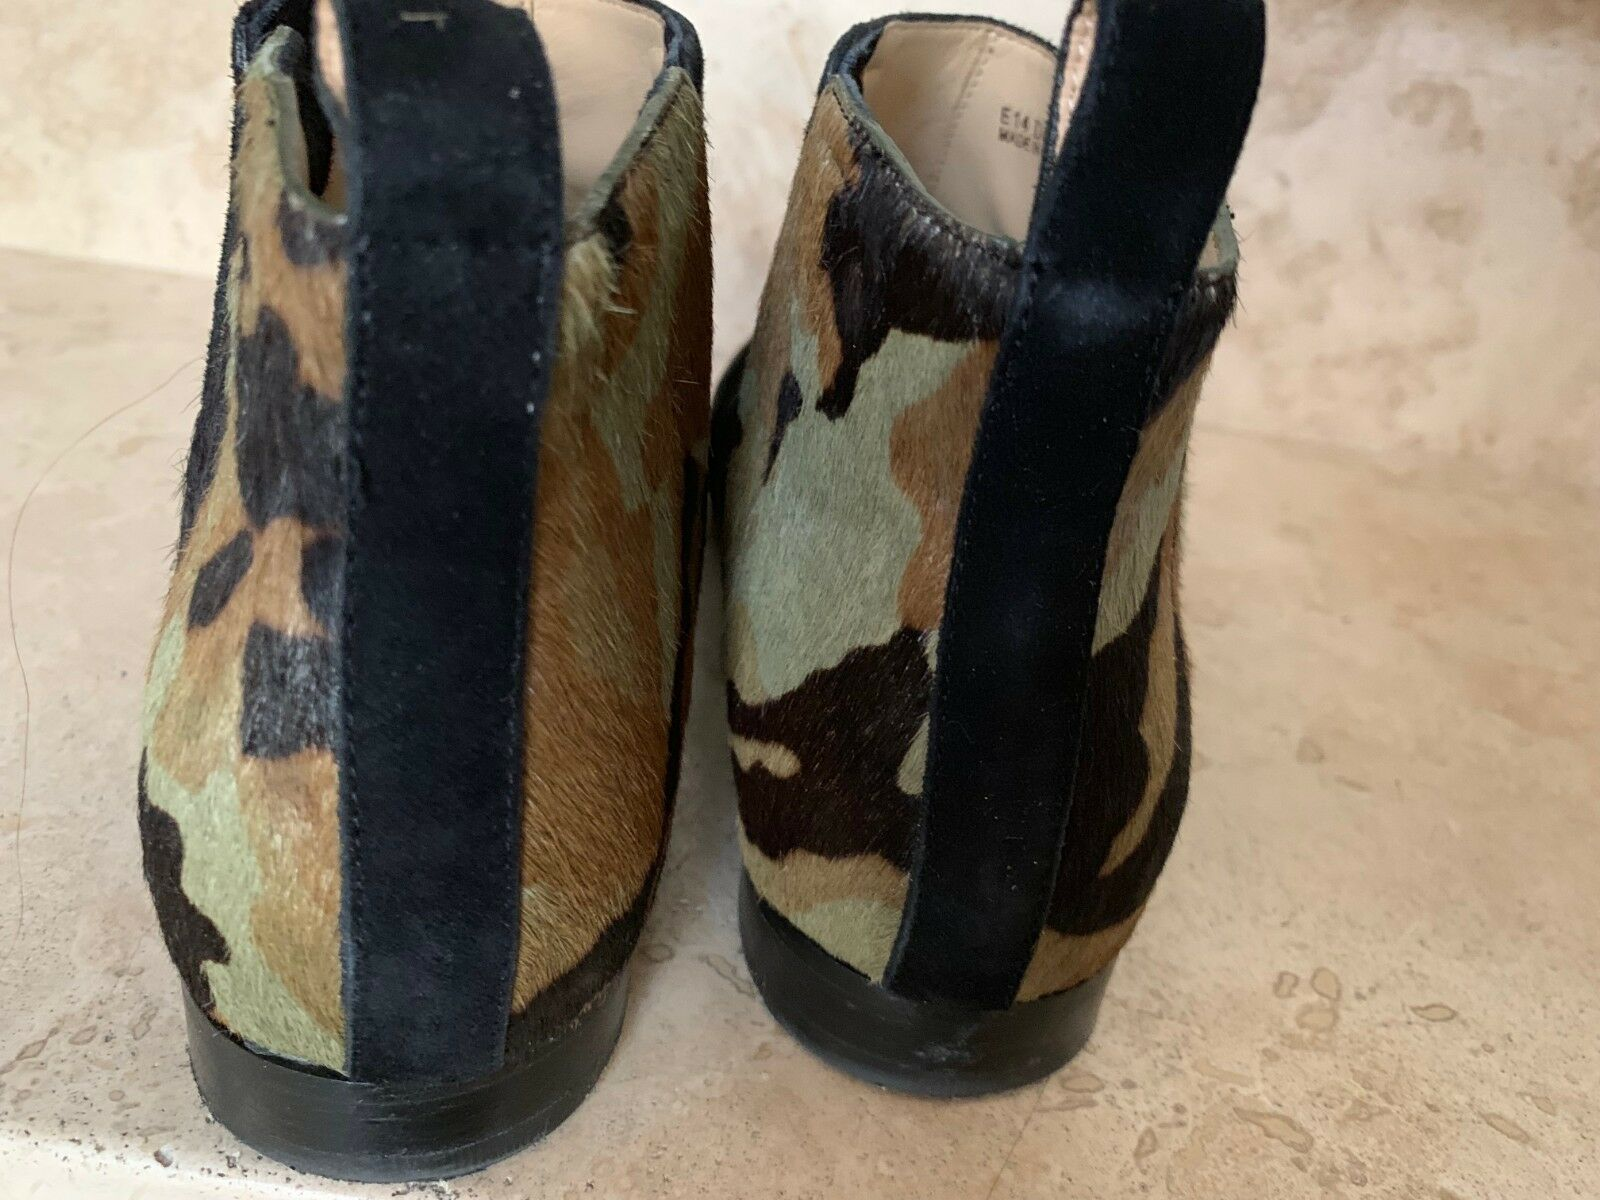 Cole Haan Embury Bootie Black Black Black Suede and Green Camouflage Size 7 5f41e0